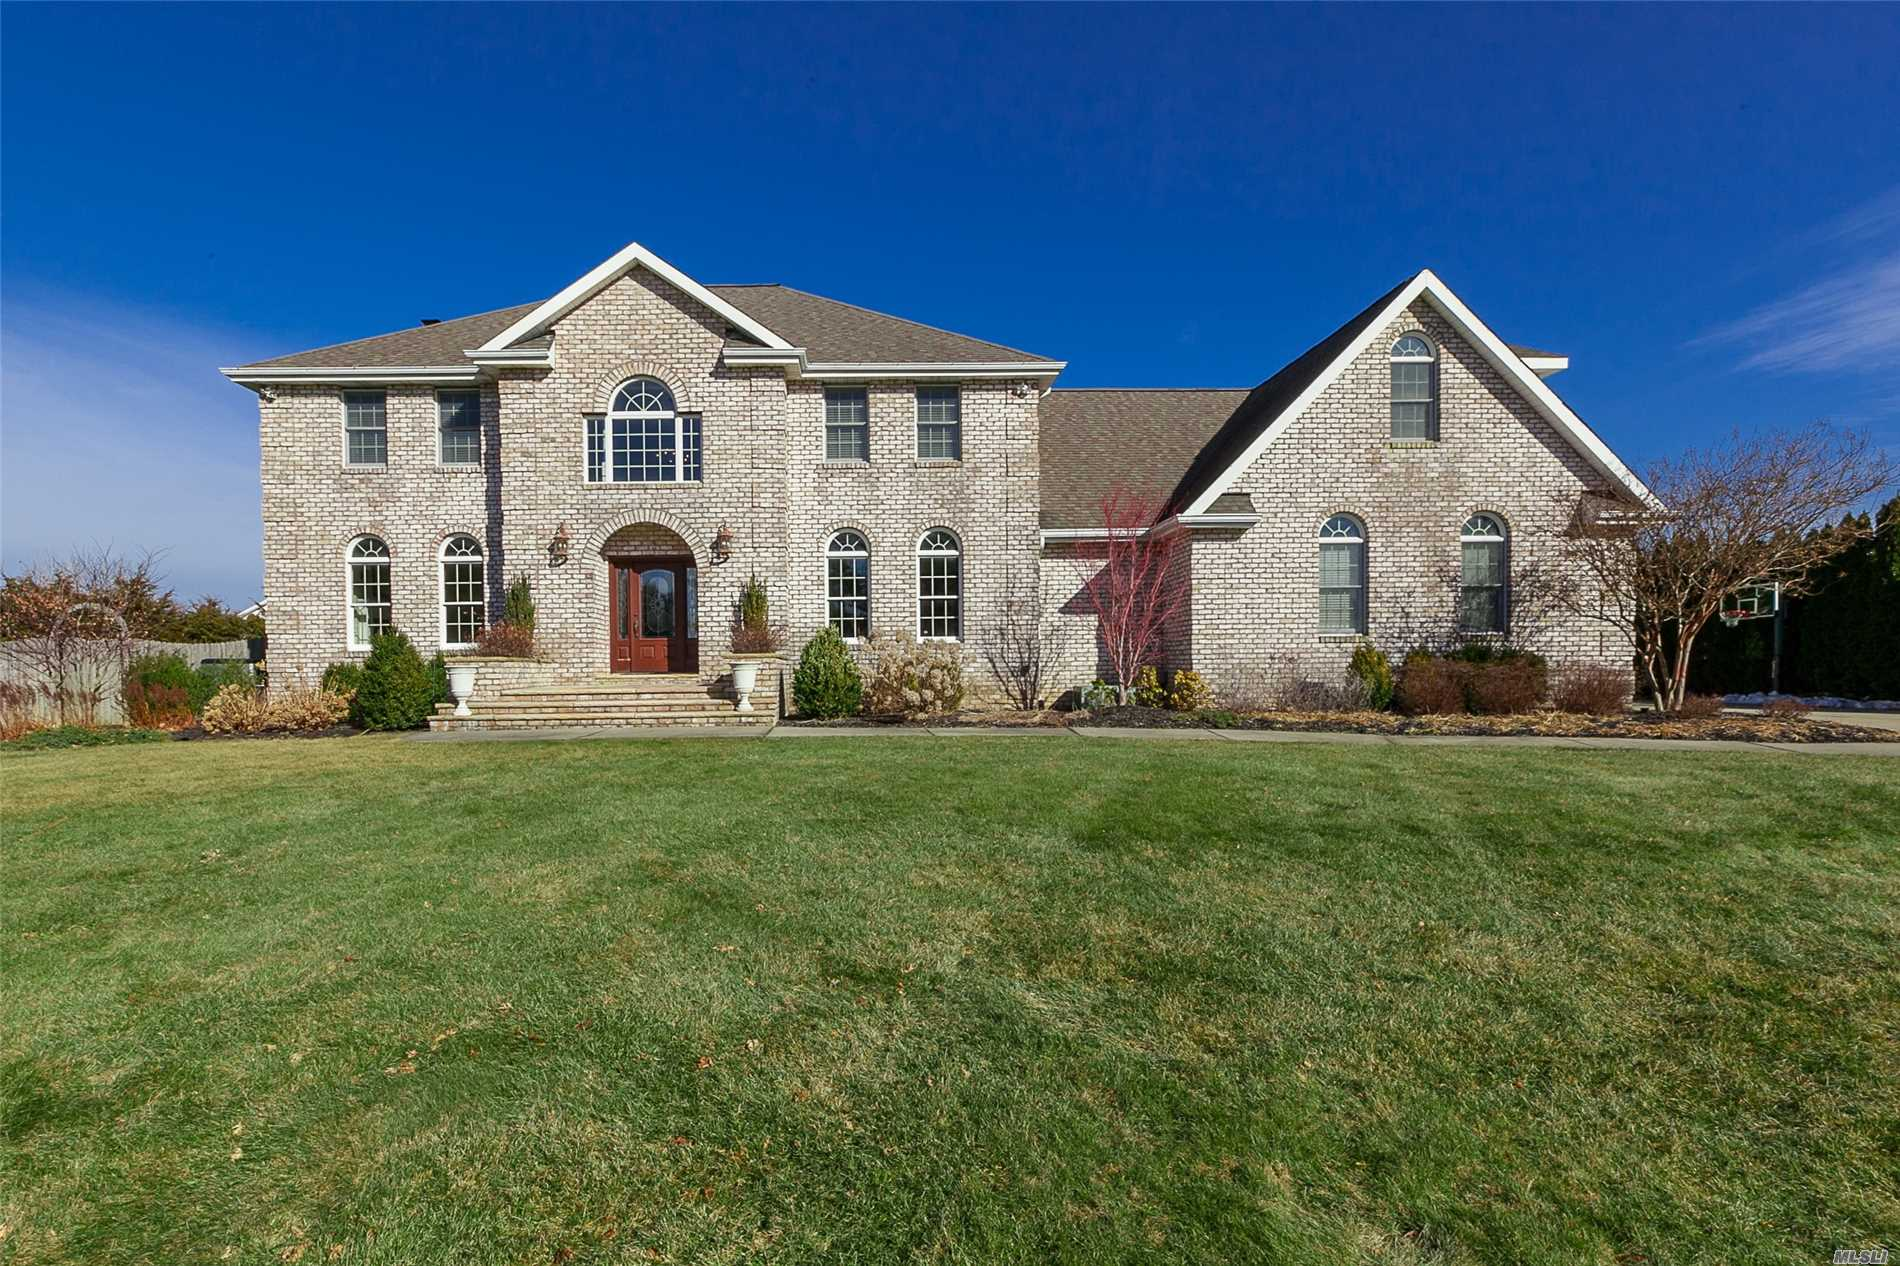 This Amazing Home Has It All. Go Ahead And Make The Appointment To Preview Today!